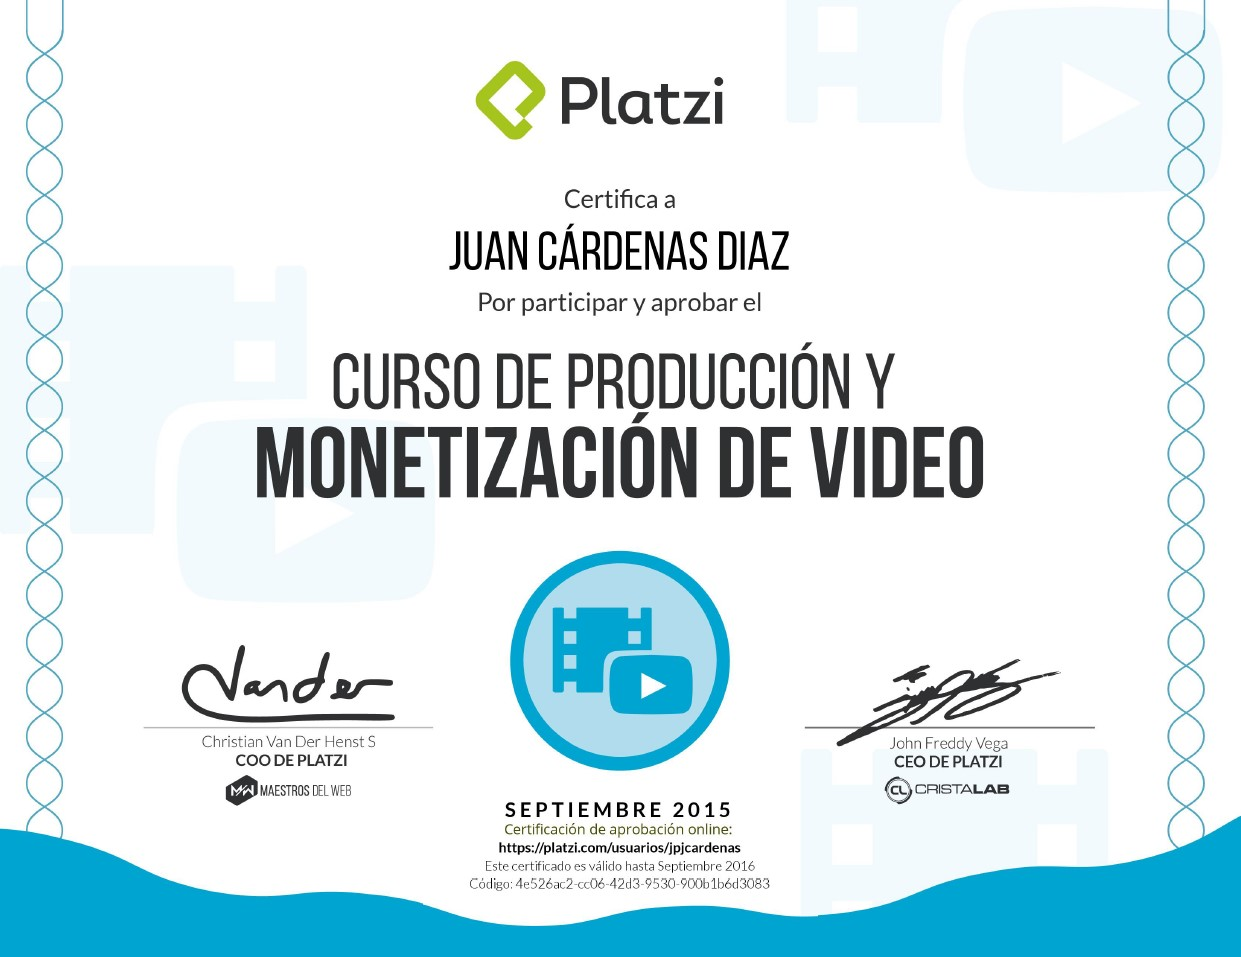 Curso de Producción y Monetización de Video